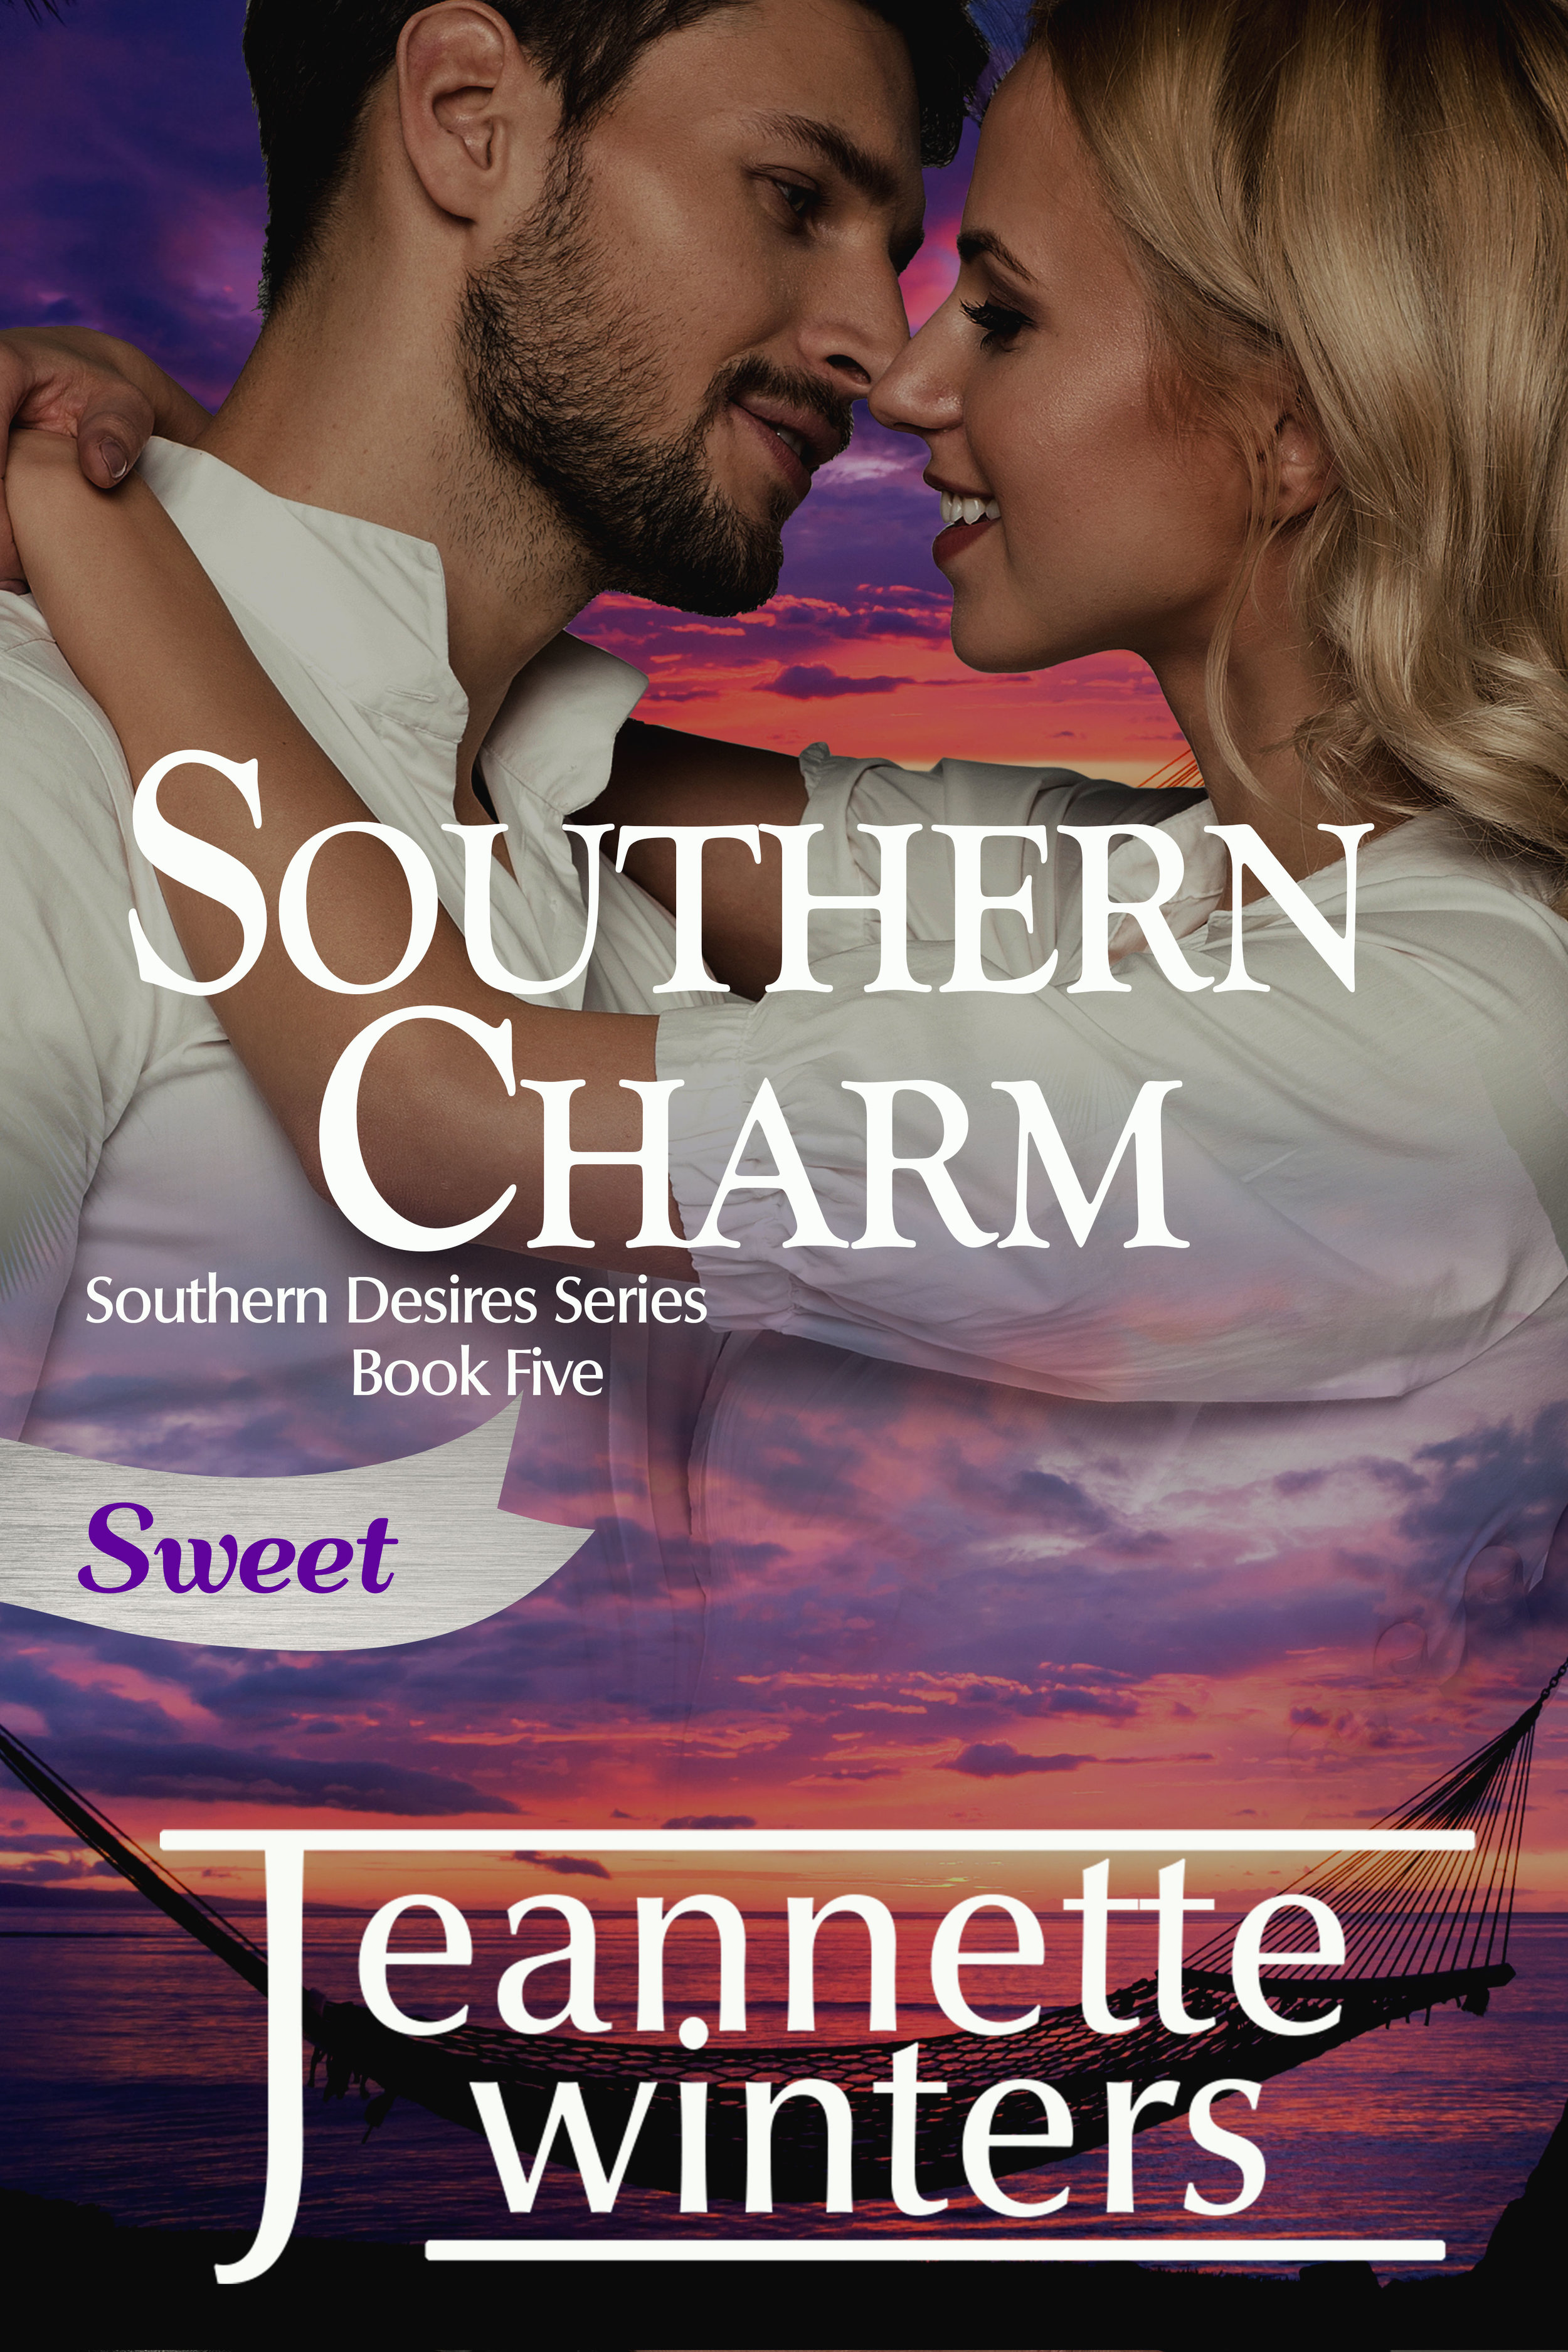 Enjoy this clean and wholesome version of Southern Charm. Same story without the spice. The Sweet version still contains adult situations and relationships. If you prefer the hotter version be sure to download the original.  Wyatt McVeigh had left the Army for one reason, to make a difference on a more personal level. No matter who it hurt, he dedicated himself to uncovering the truth and bringing the lies into the light.  Mirranda Graham had spent the last six years lying about who she was and what she did. She'd let nothing stand in the way of bringing those responsible for her sister's death to justice.  Wyatt is determined to uncover her secret. Mirranda knows if her secret is revealed it could endanger the lives of many innocent people.  In Wyatt's pursuit for the truth he finds Mirranda's life is on the line. Will he create lies of his own to protect her? Can Mirranda win Wyatt's heart with her southern charm or will the price of her past cost them their future?